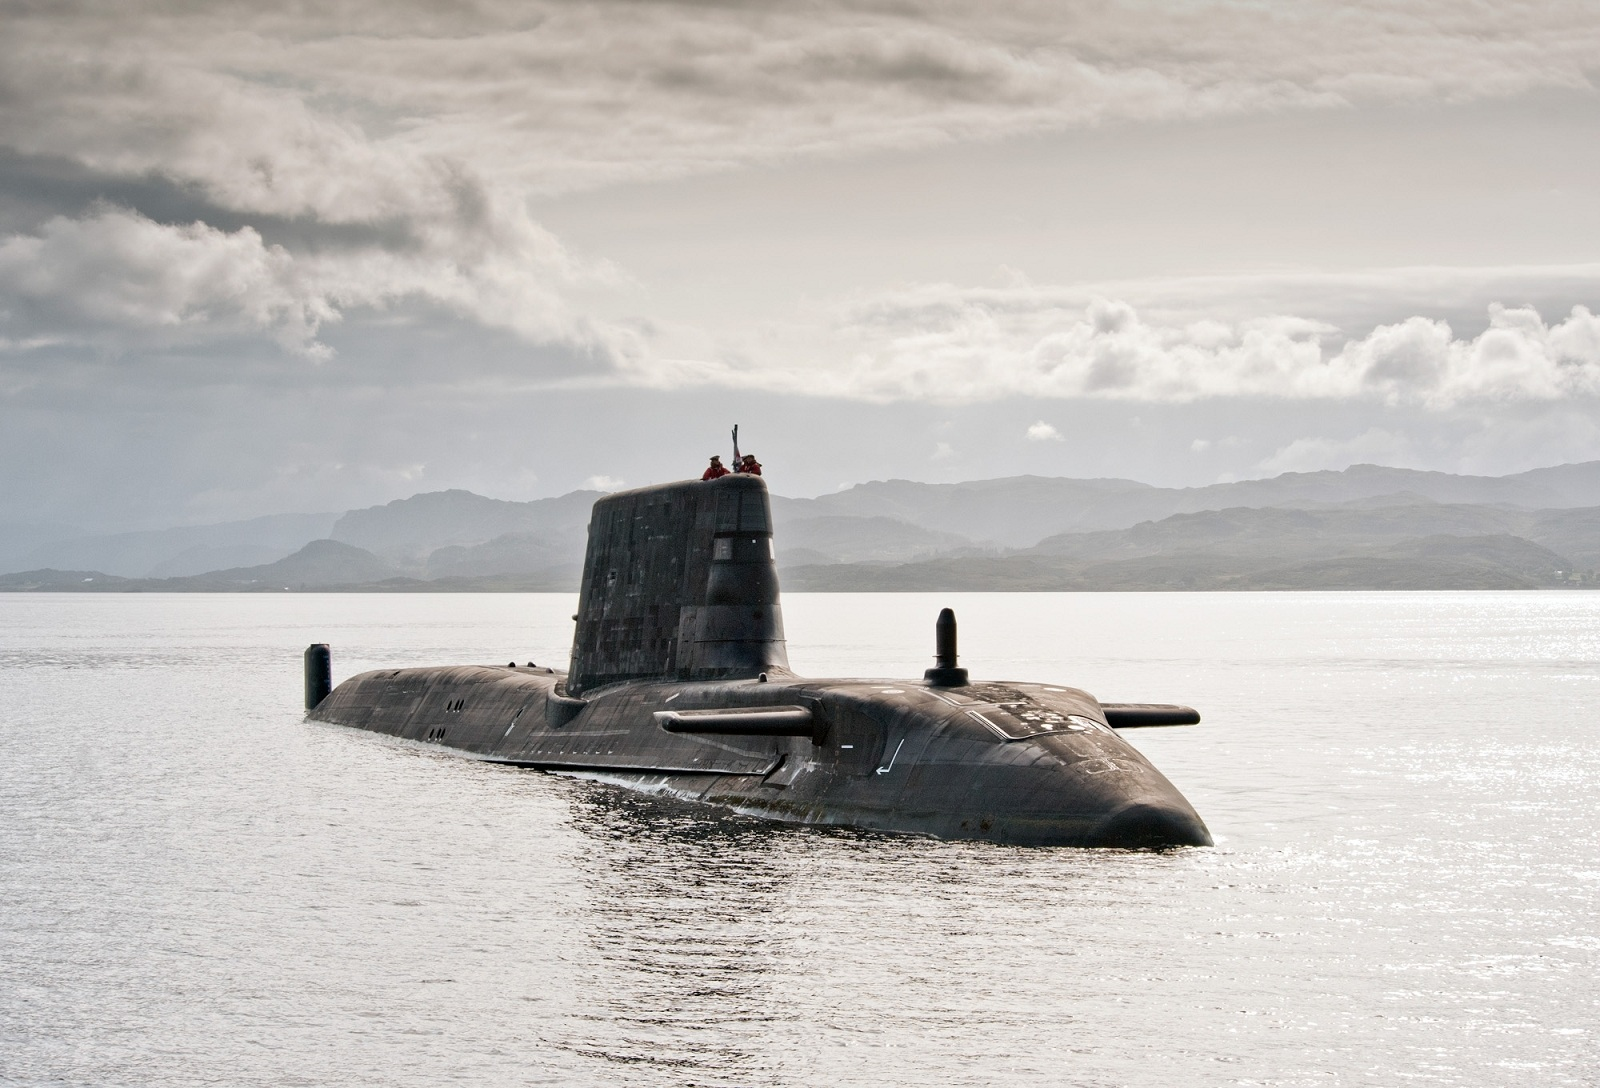 Naval Analyses: The attack submarines of Europe by 2030